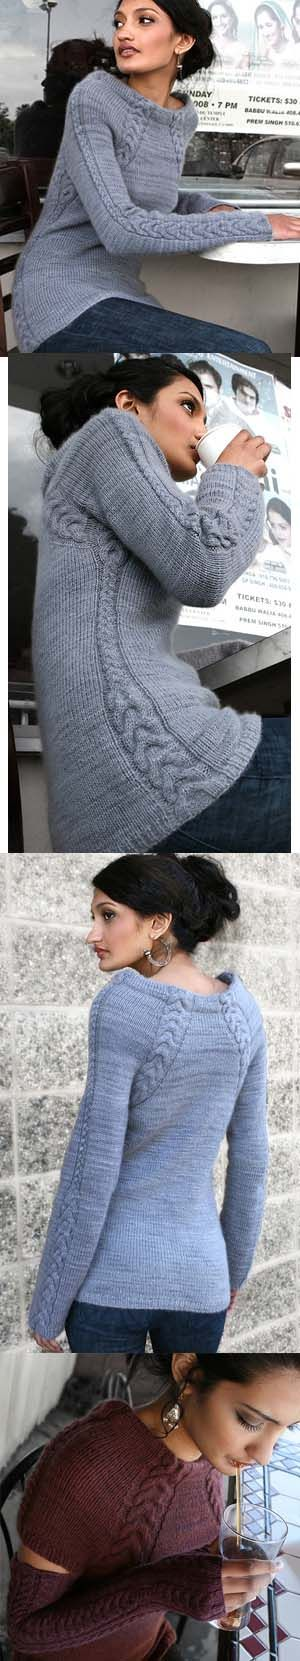 Oh this has my name written ALL over it!!! - Silken Scabbard Knitting Pattern